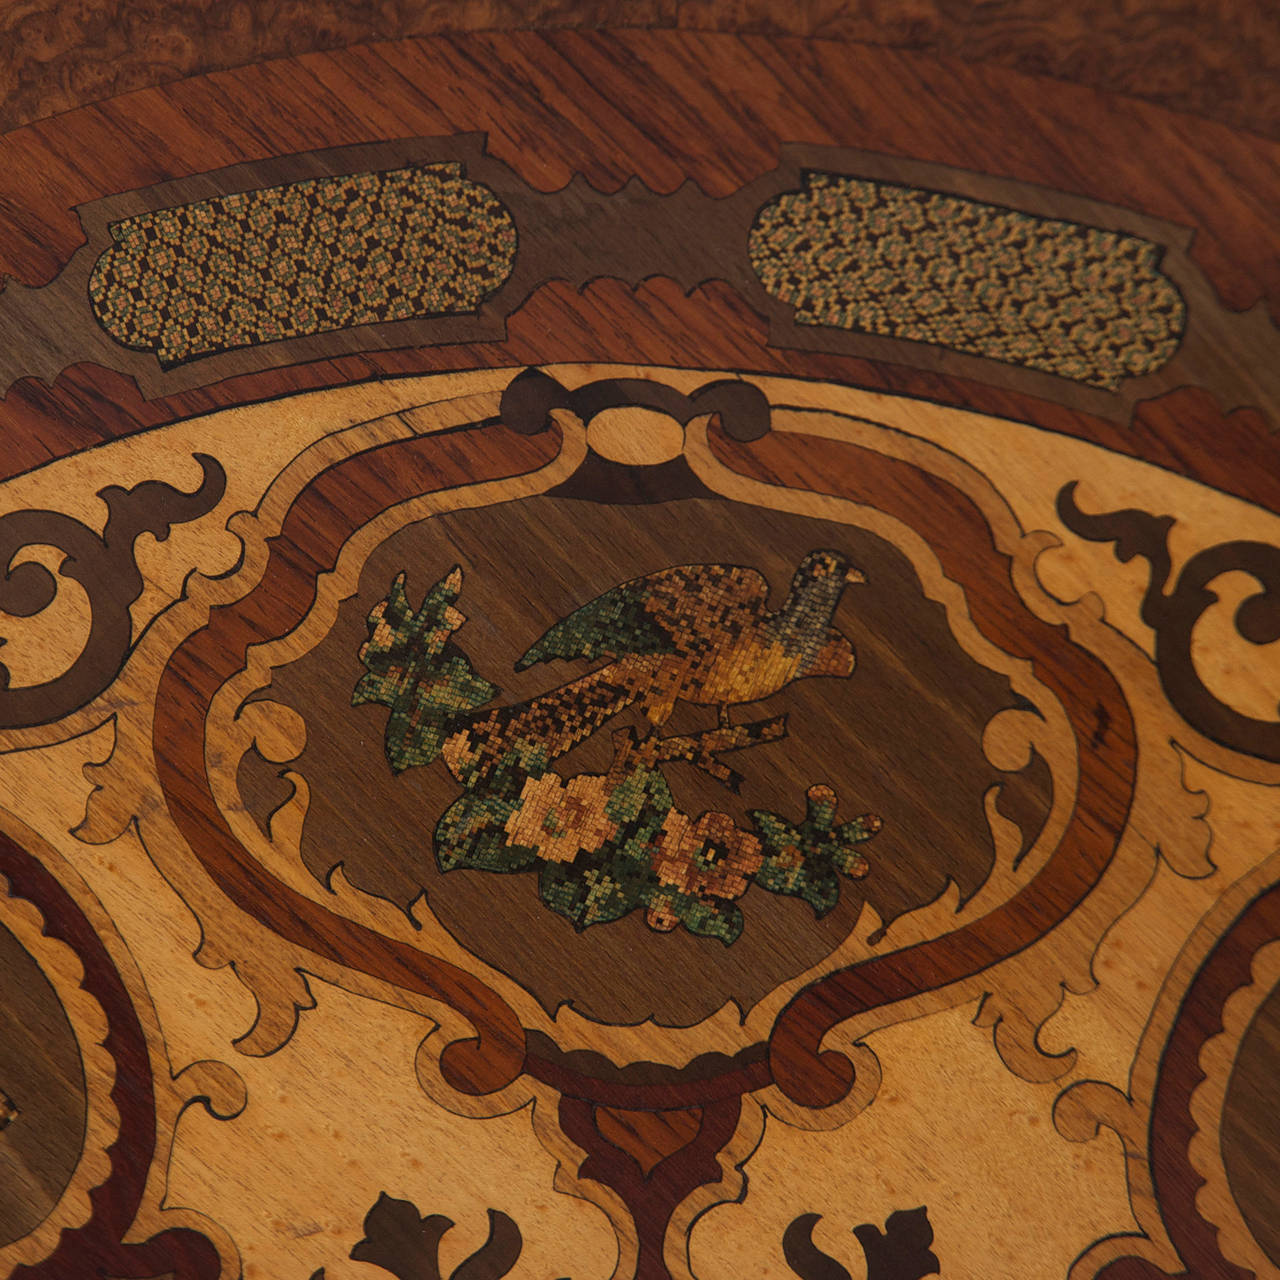 19th Century Italian Center Table with Mosaic Marquetry on Round Top 5